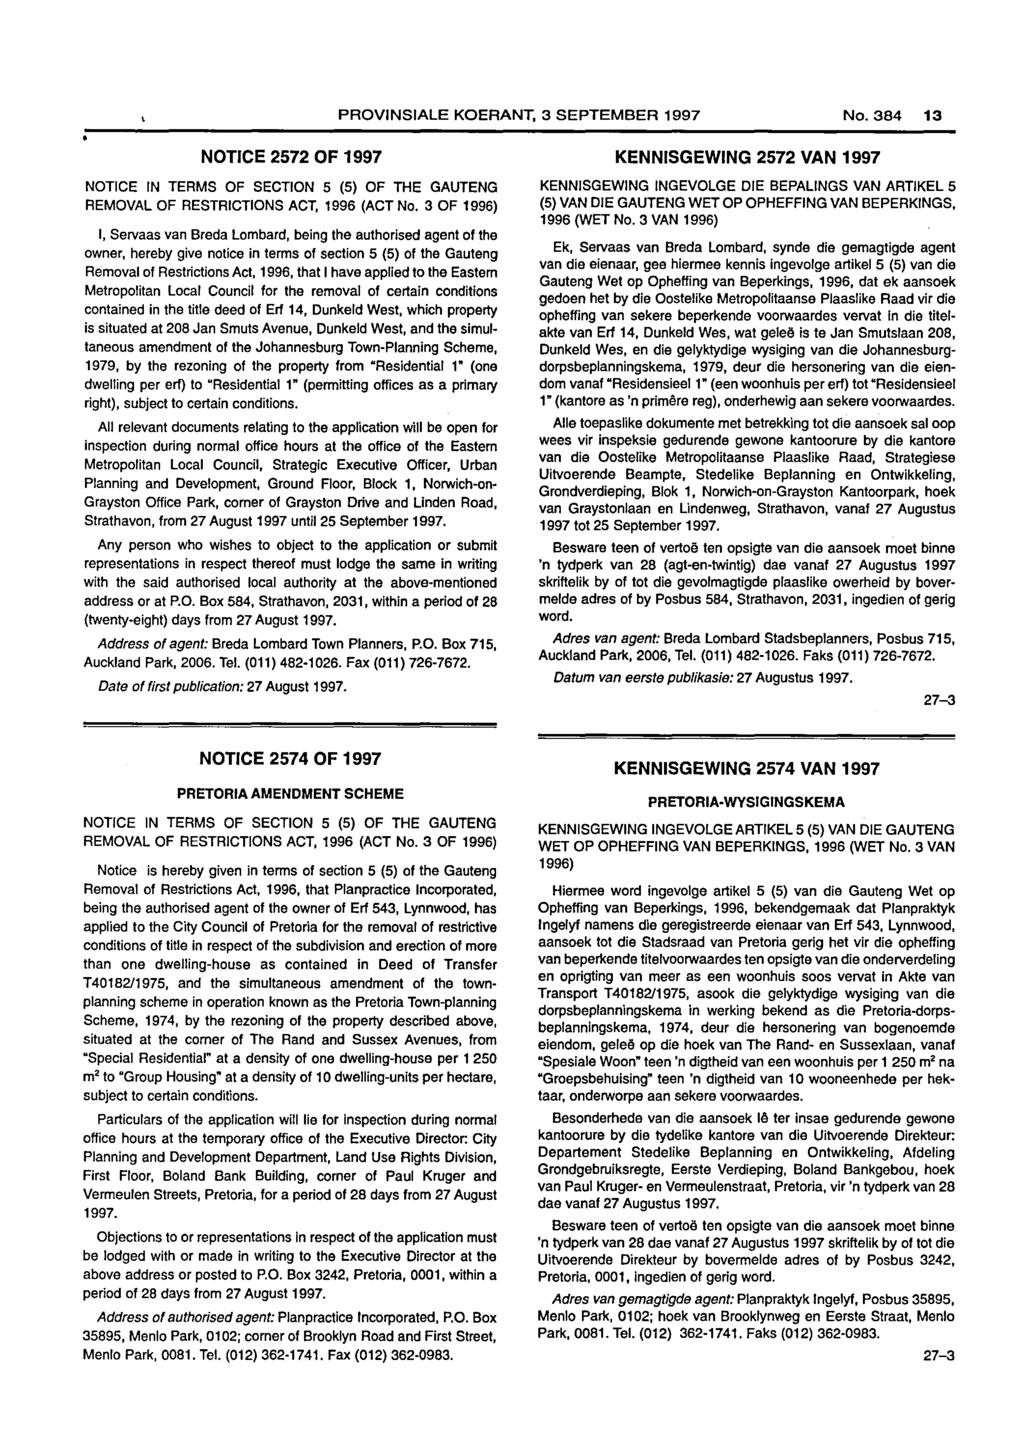 PROVINSIALE KOERANT, 3 SEPTEMBER 1997 No. 13 NOTICE 2572 OF 1997 NOTICE IN TERMS OF SECTION 5 (5) OF THE GAUTENG REMOVAL OF RESTRICTIONS ACT, 1996 (ACT No.